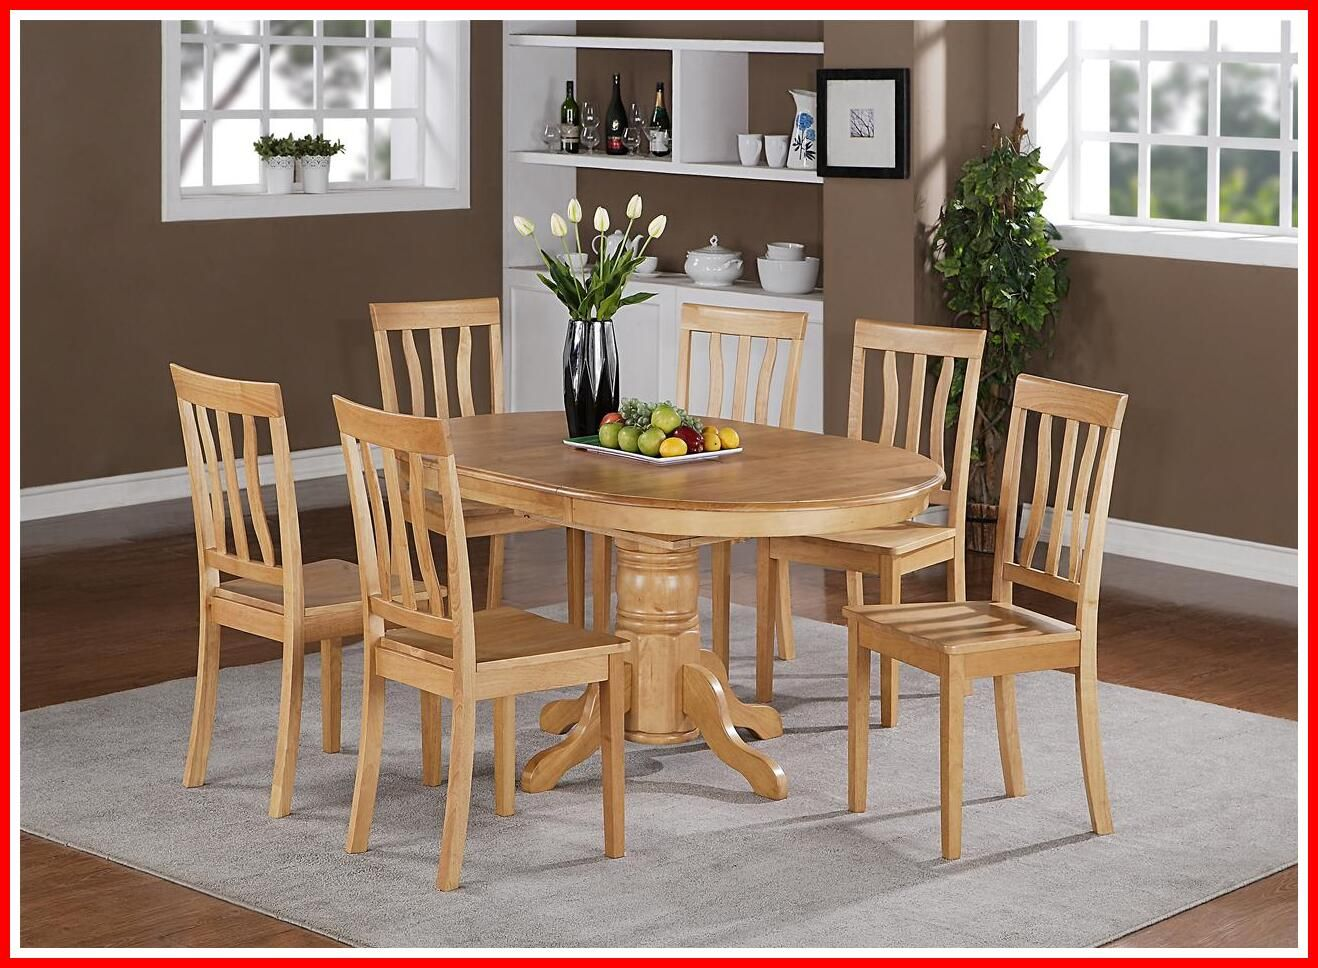 92 Reference Of Round Kitchen Table With Bench In 2020 Black Kitchen Table Oval Kitchen Table Round Kitchen Table